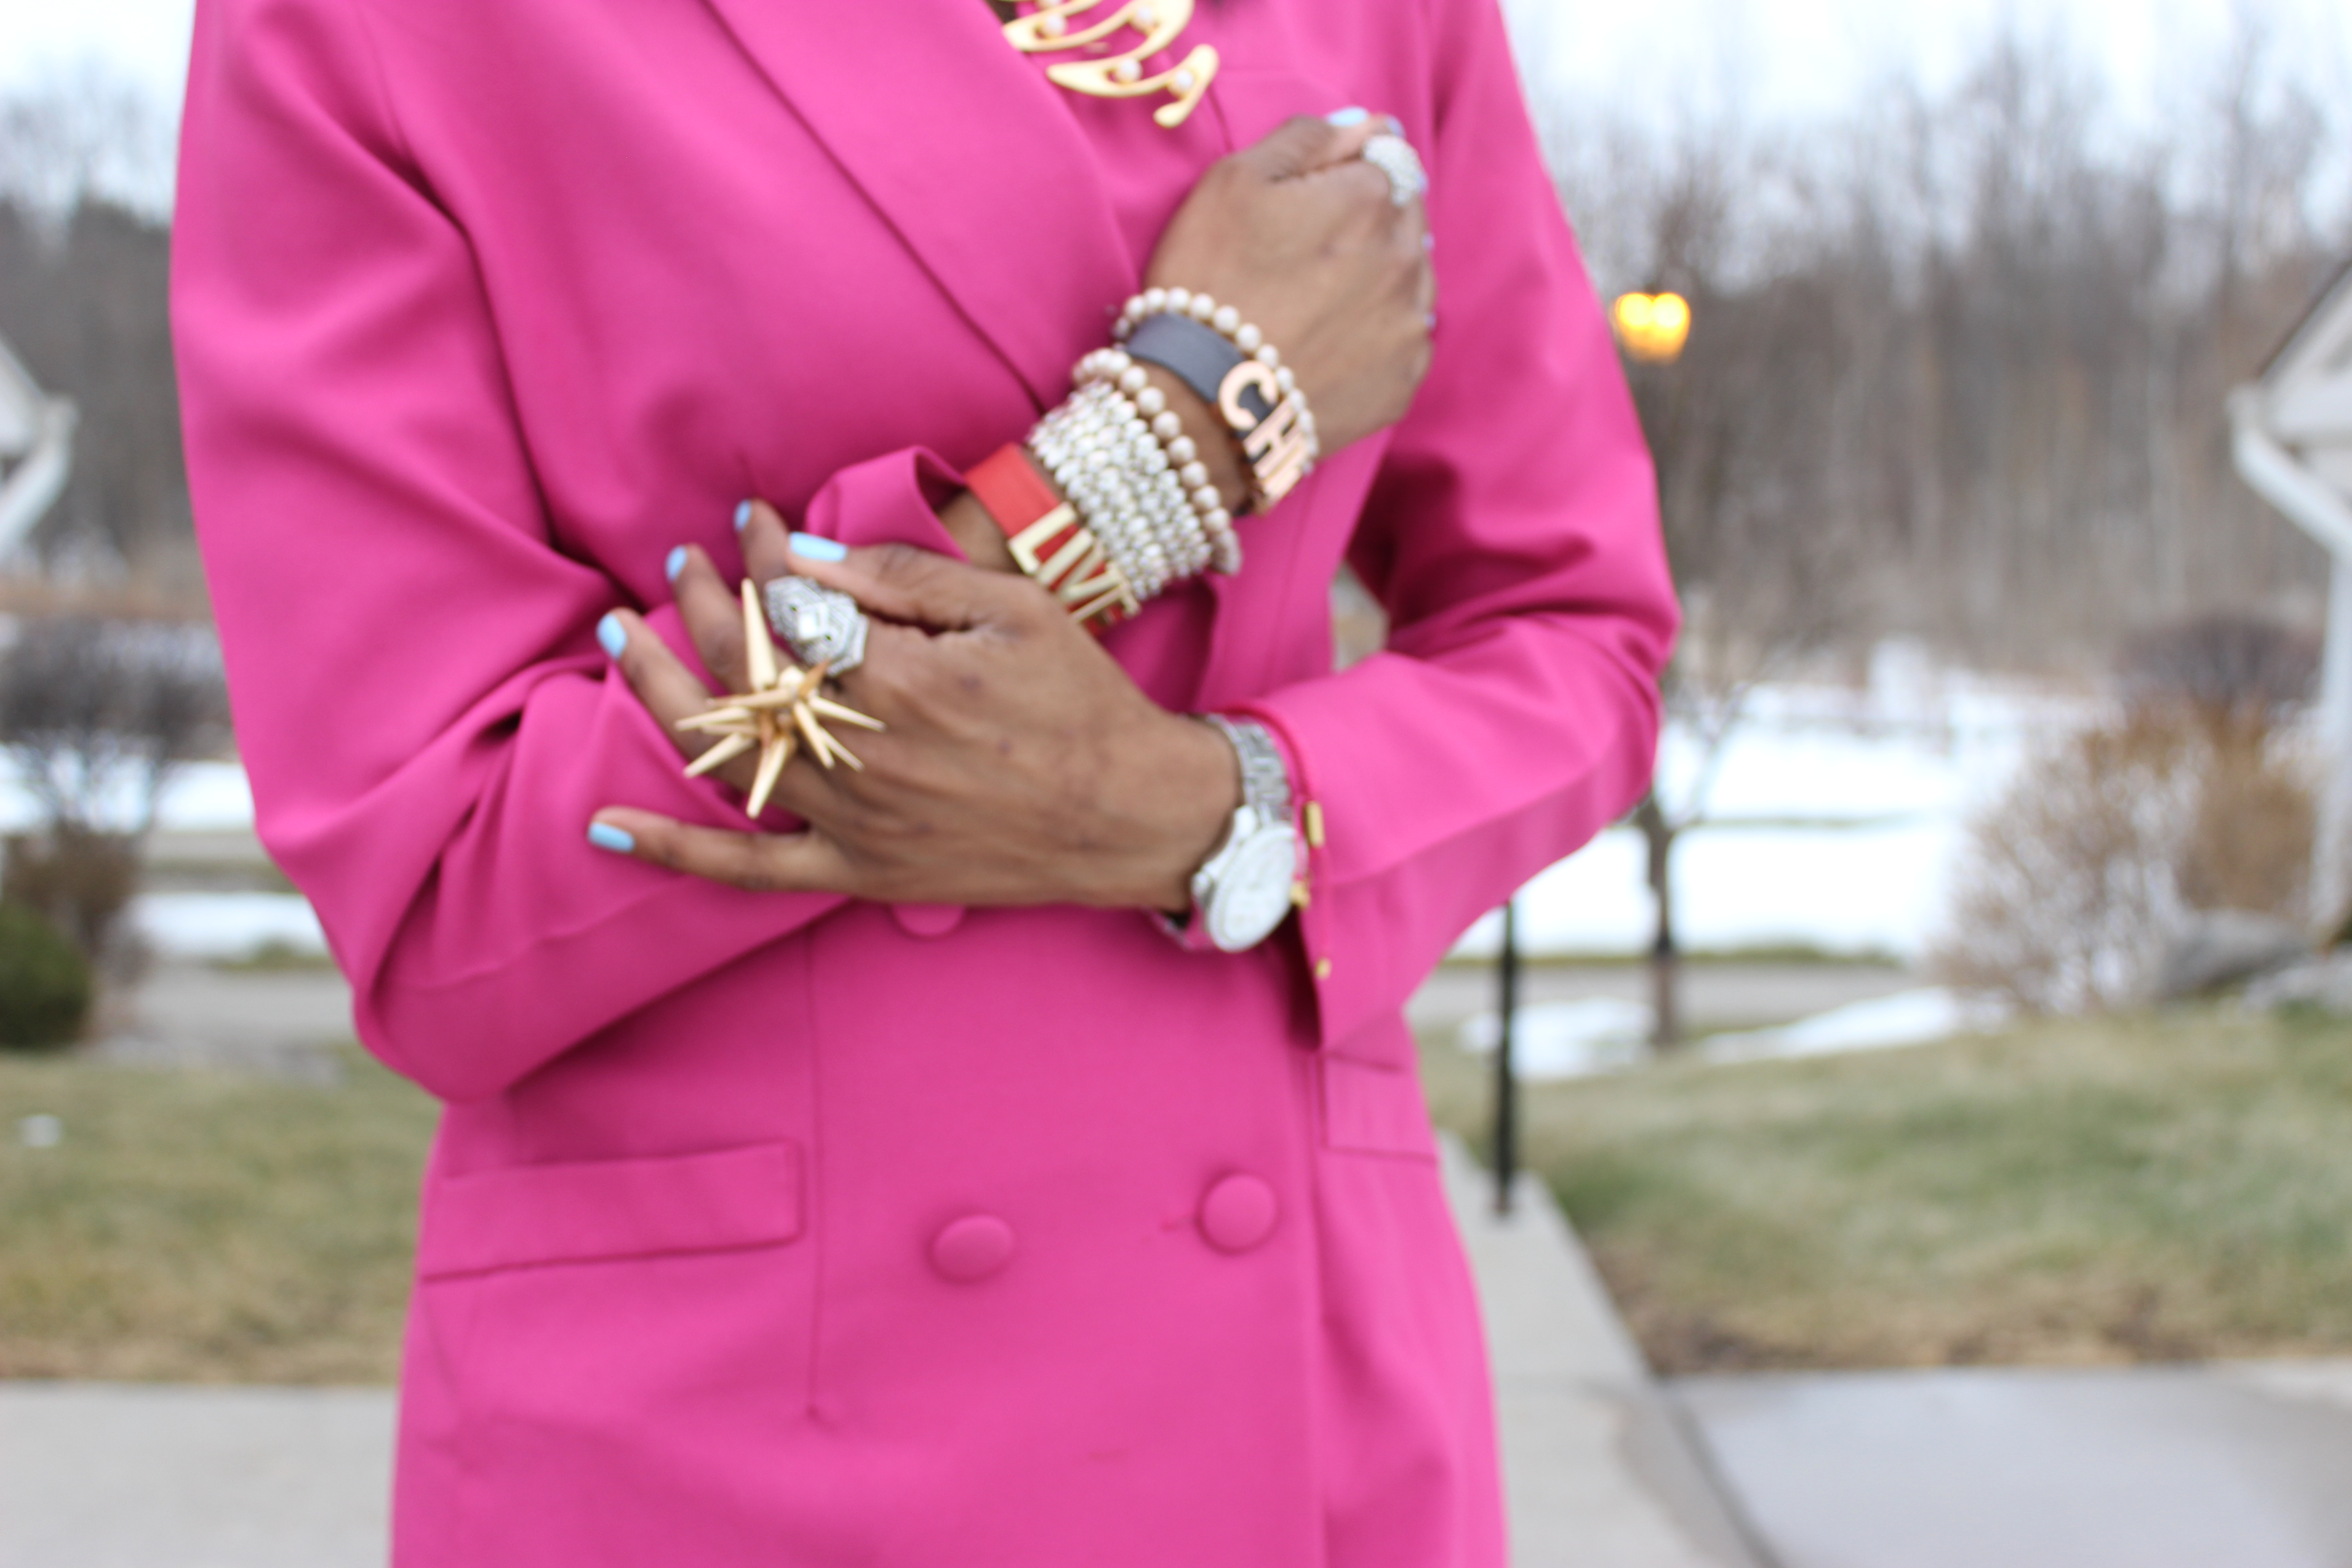 Style-Files-Hot-Pink-Blazer-Distessed-Jeans-Just-fav-over-the-knee-boots-bebe-shaggy-chic-coat-Pretty-Price-2